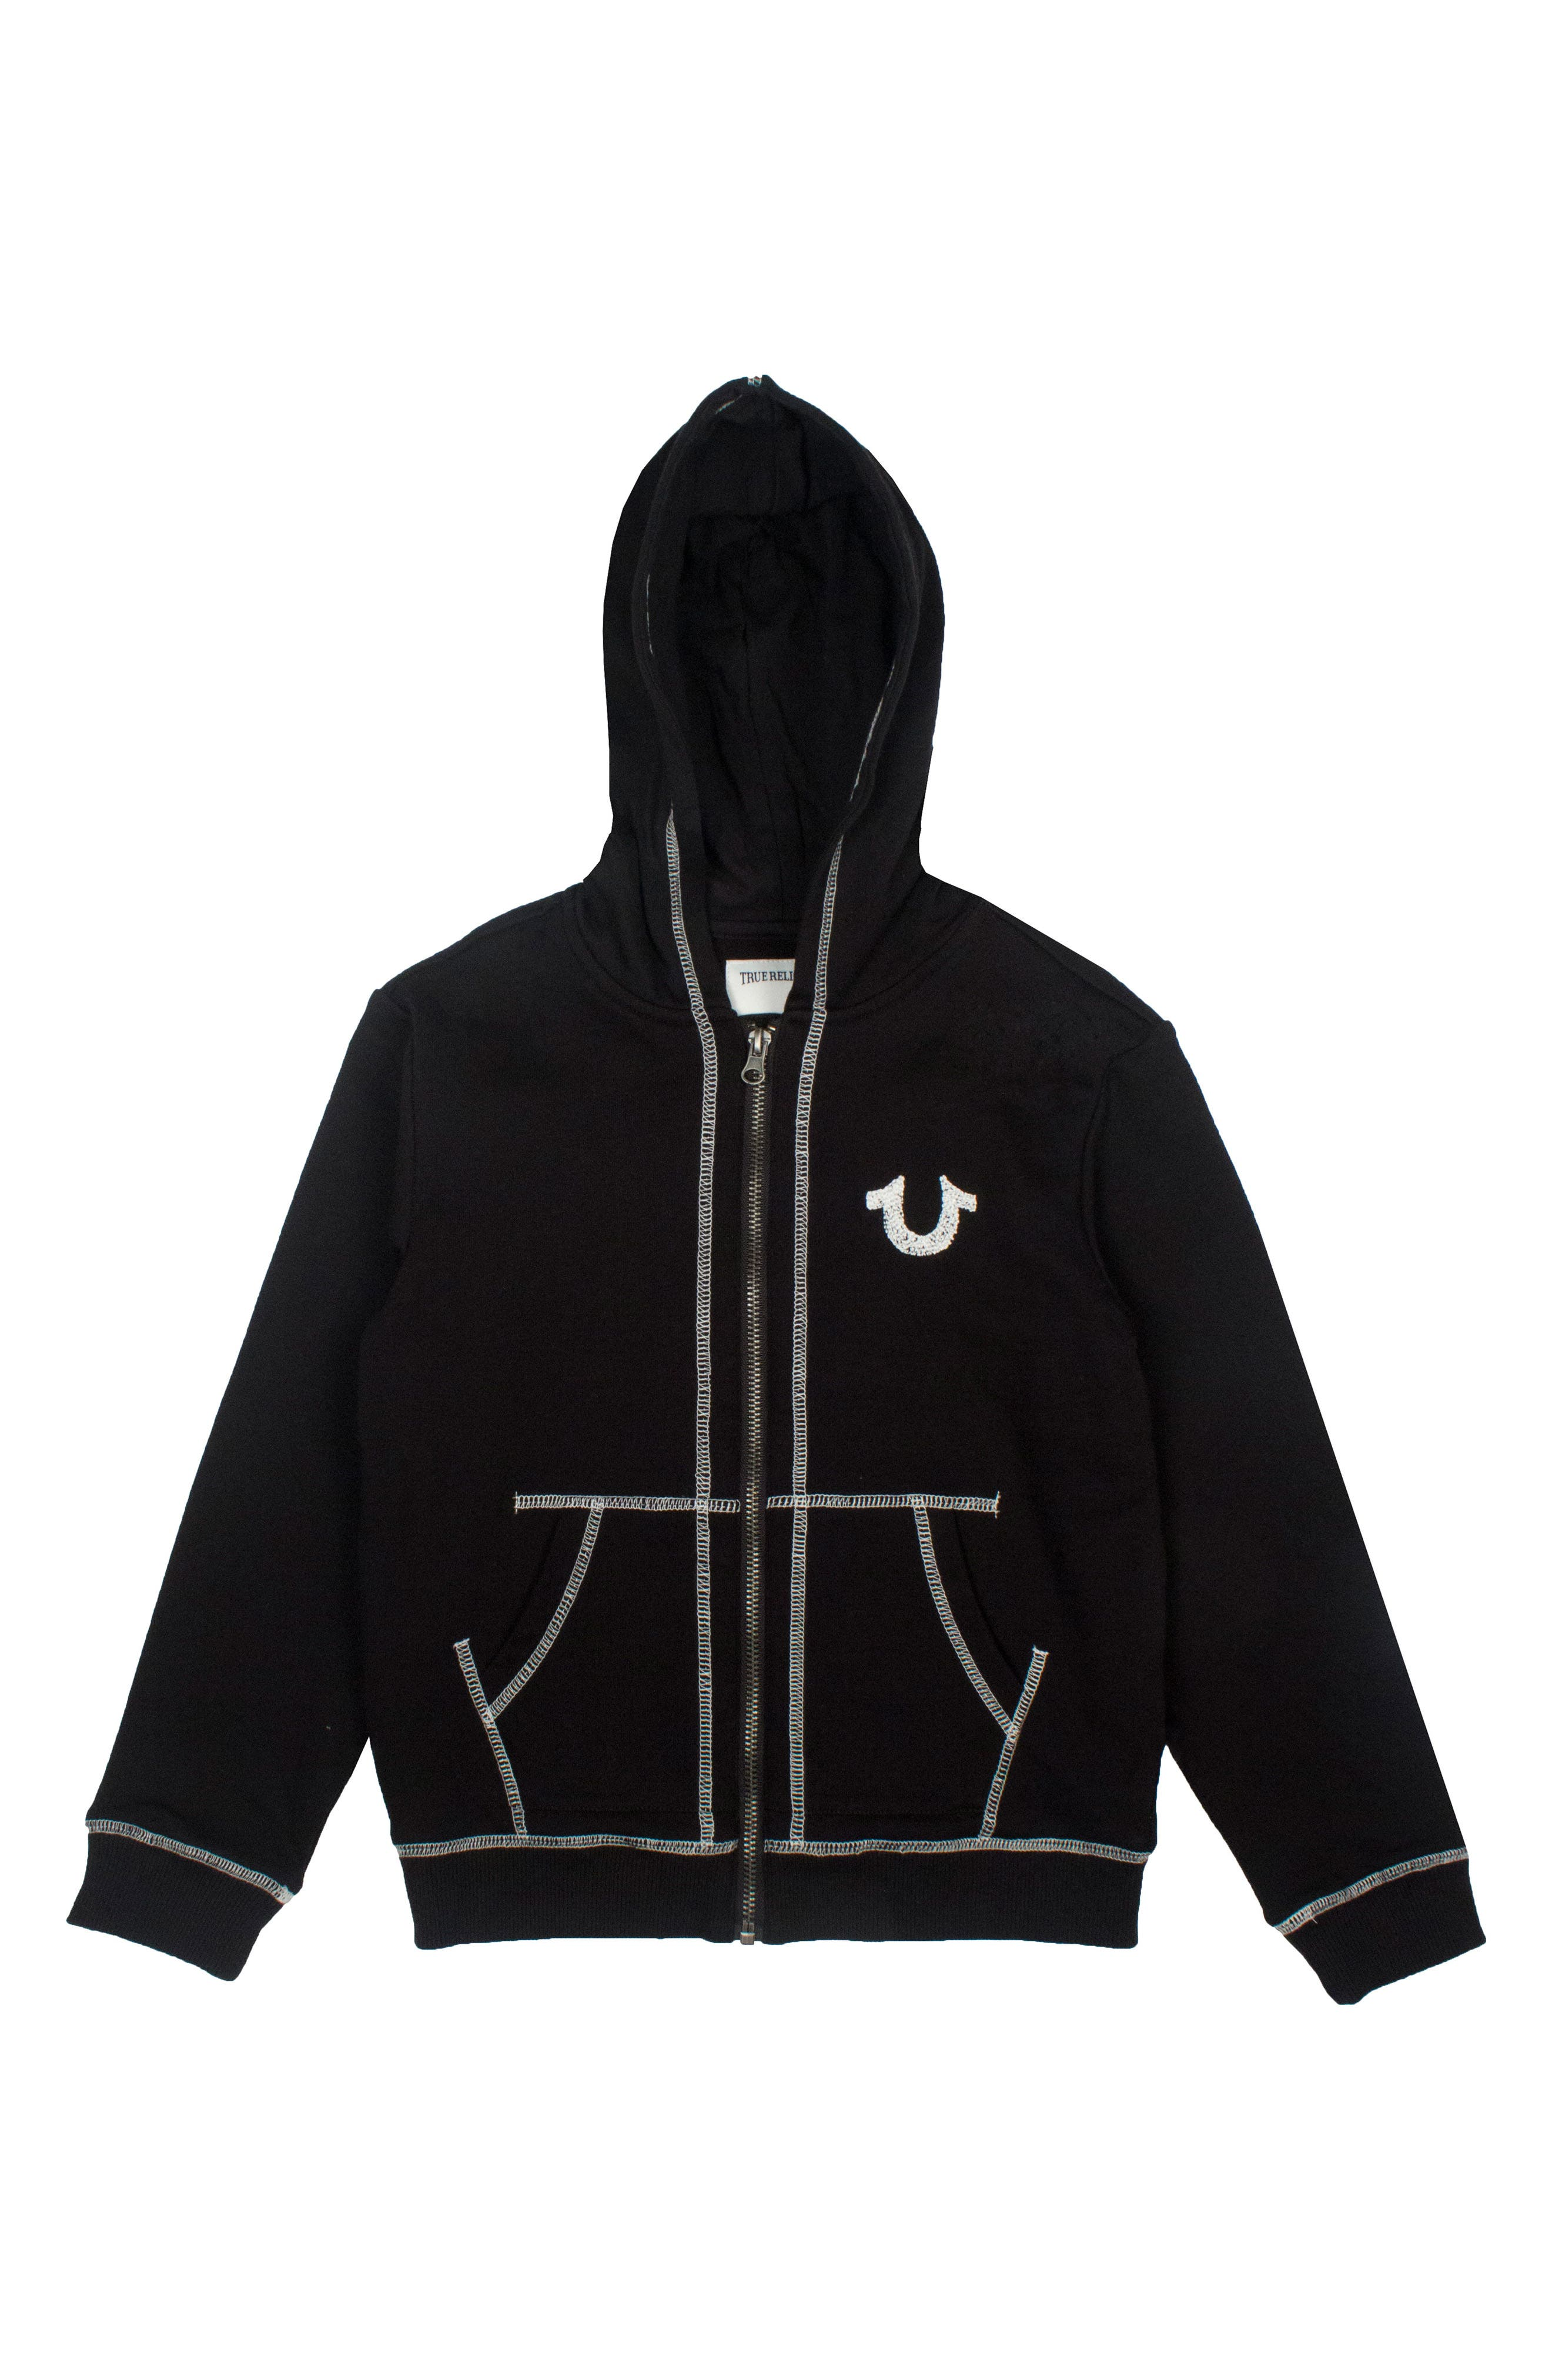 Shoe String Zip Hoodie,                             Alternate thumbnail 2, color,                             001